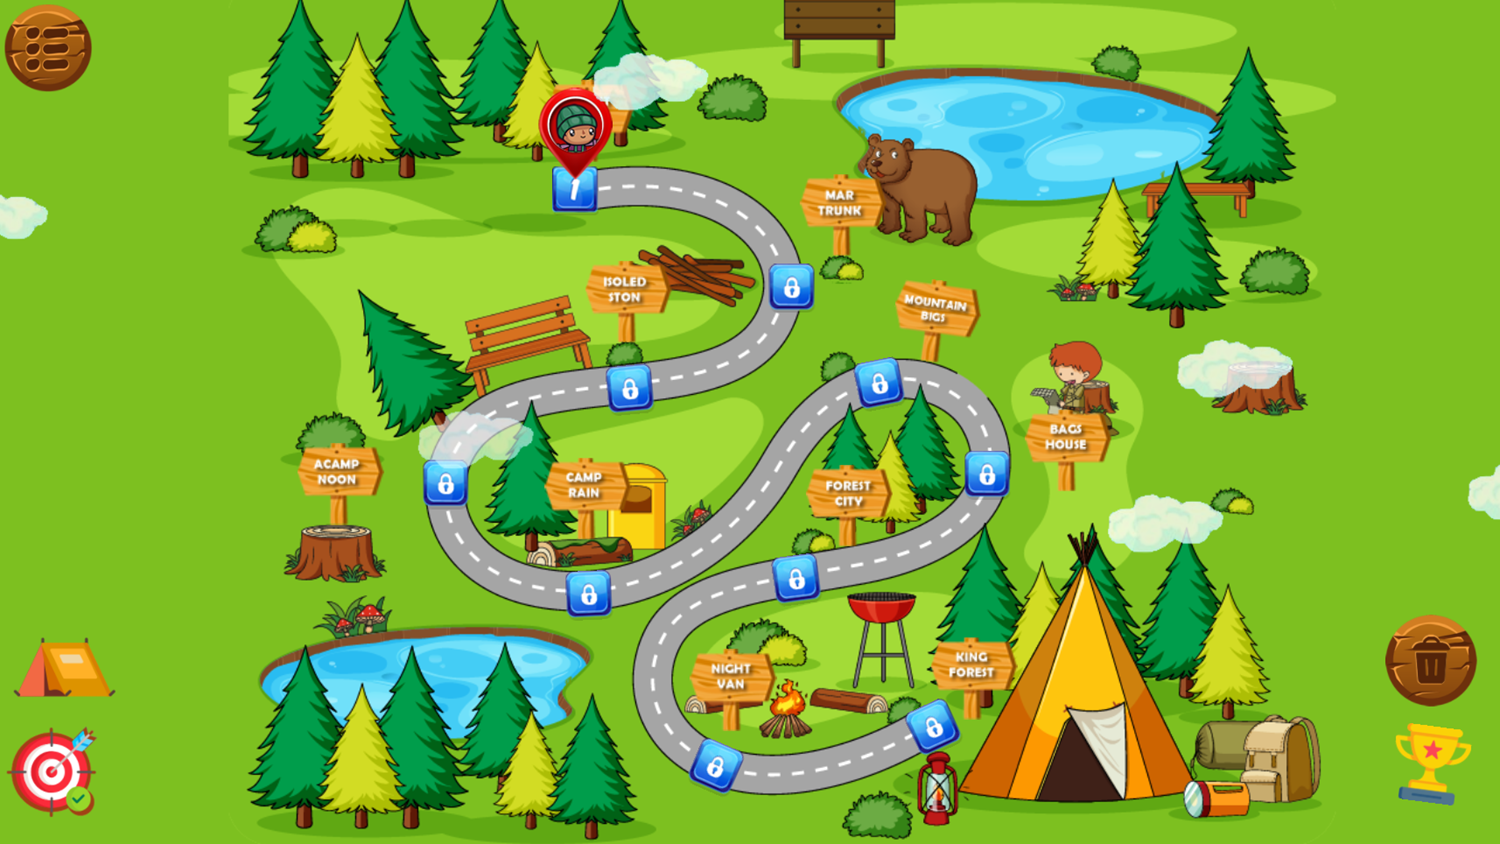 Forest Camp Adventure Game Level Select Screenshot.